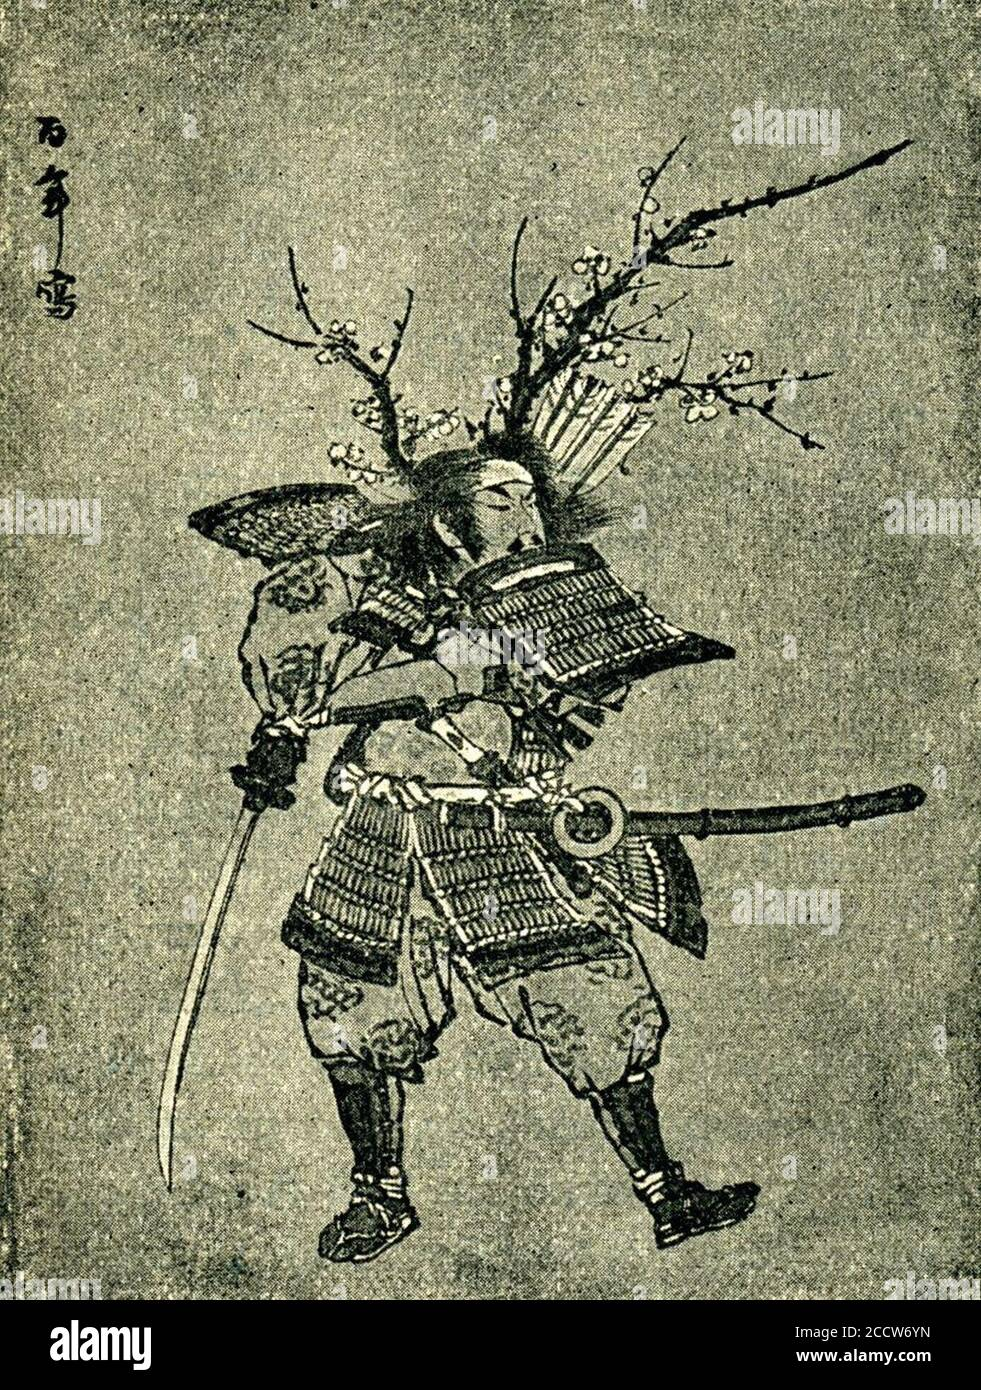 Jinmu-tenno. Image from book of 1902. Stock Photo